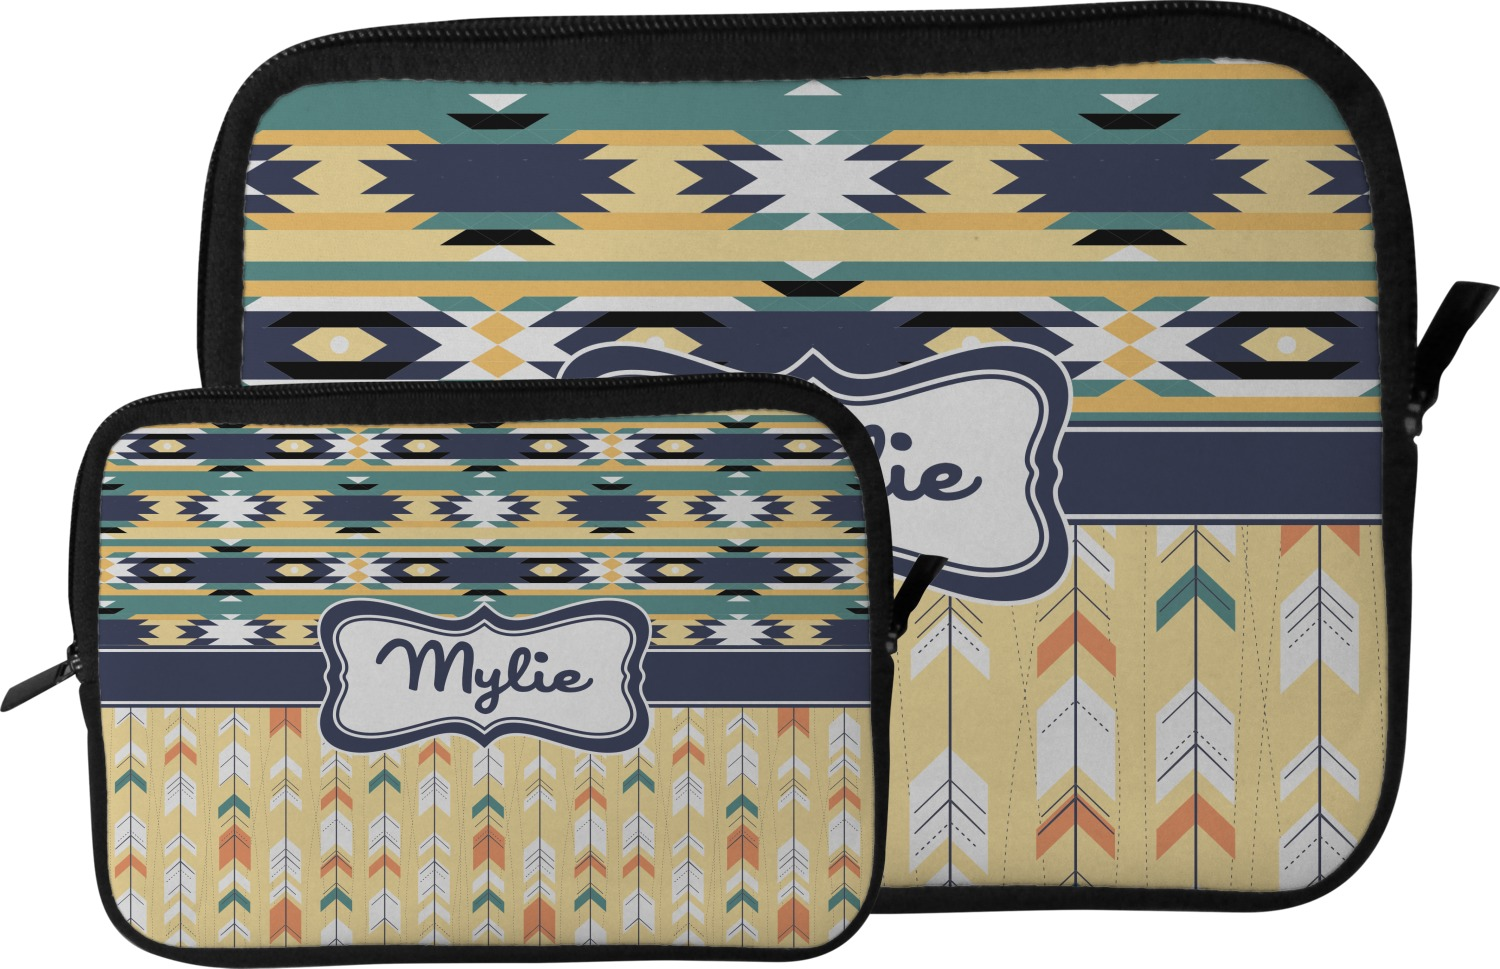 Tribal2 tablet case sleeve large personalized for Table th size